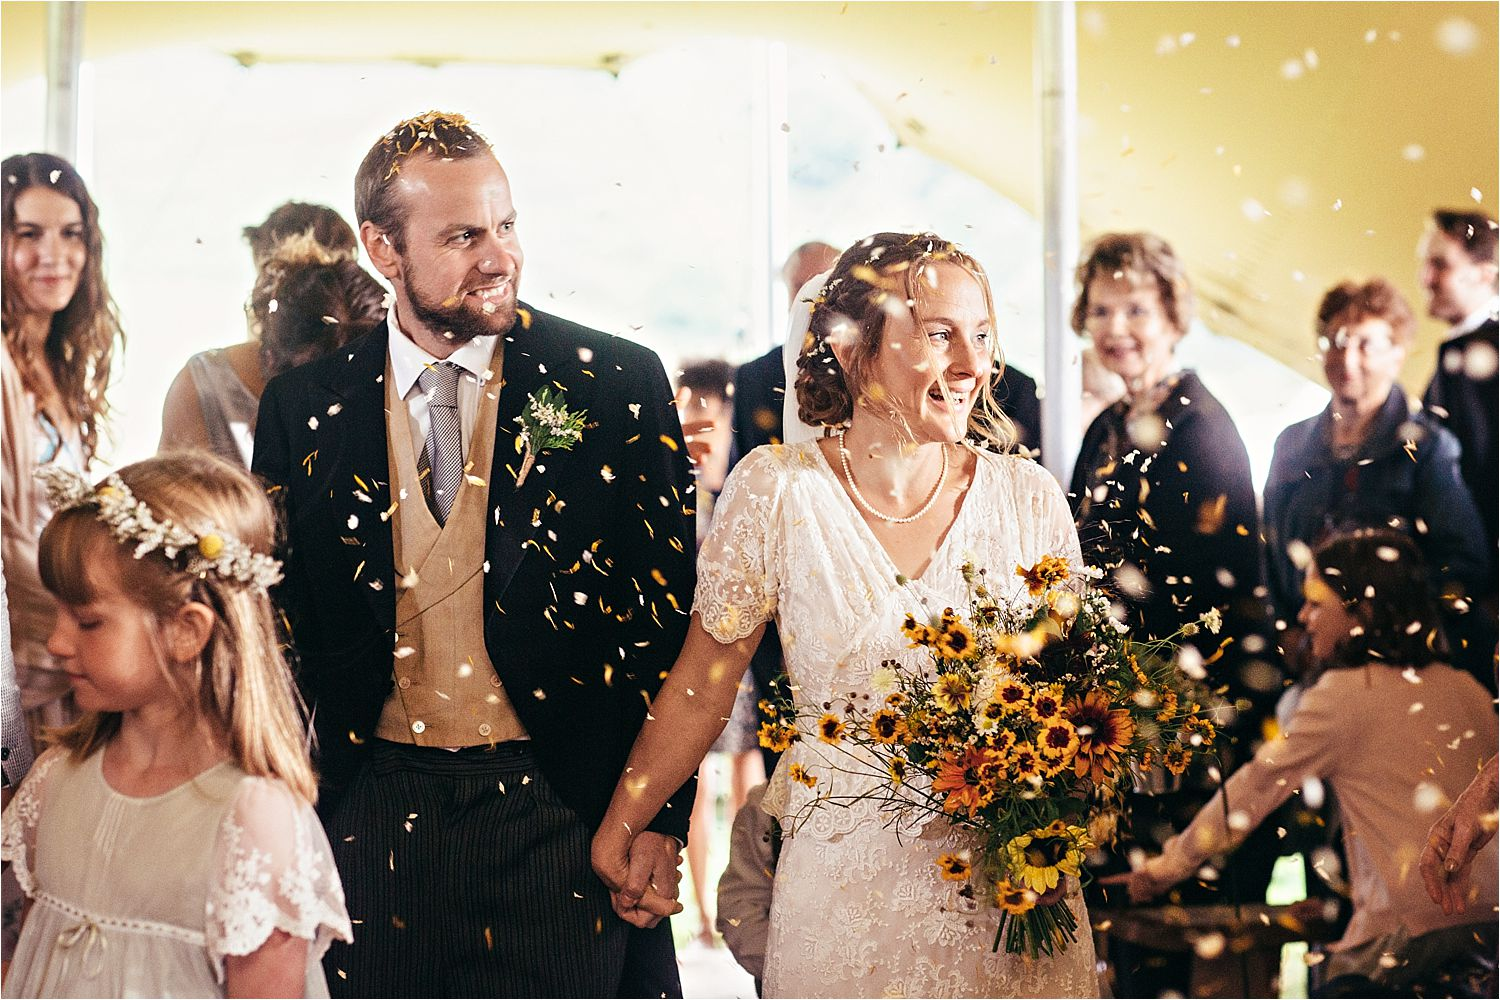 Confetti shower for bride and groom in Manchester tipi wedding